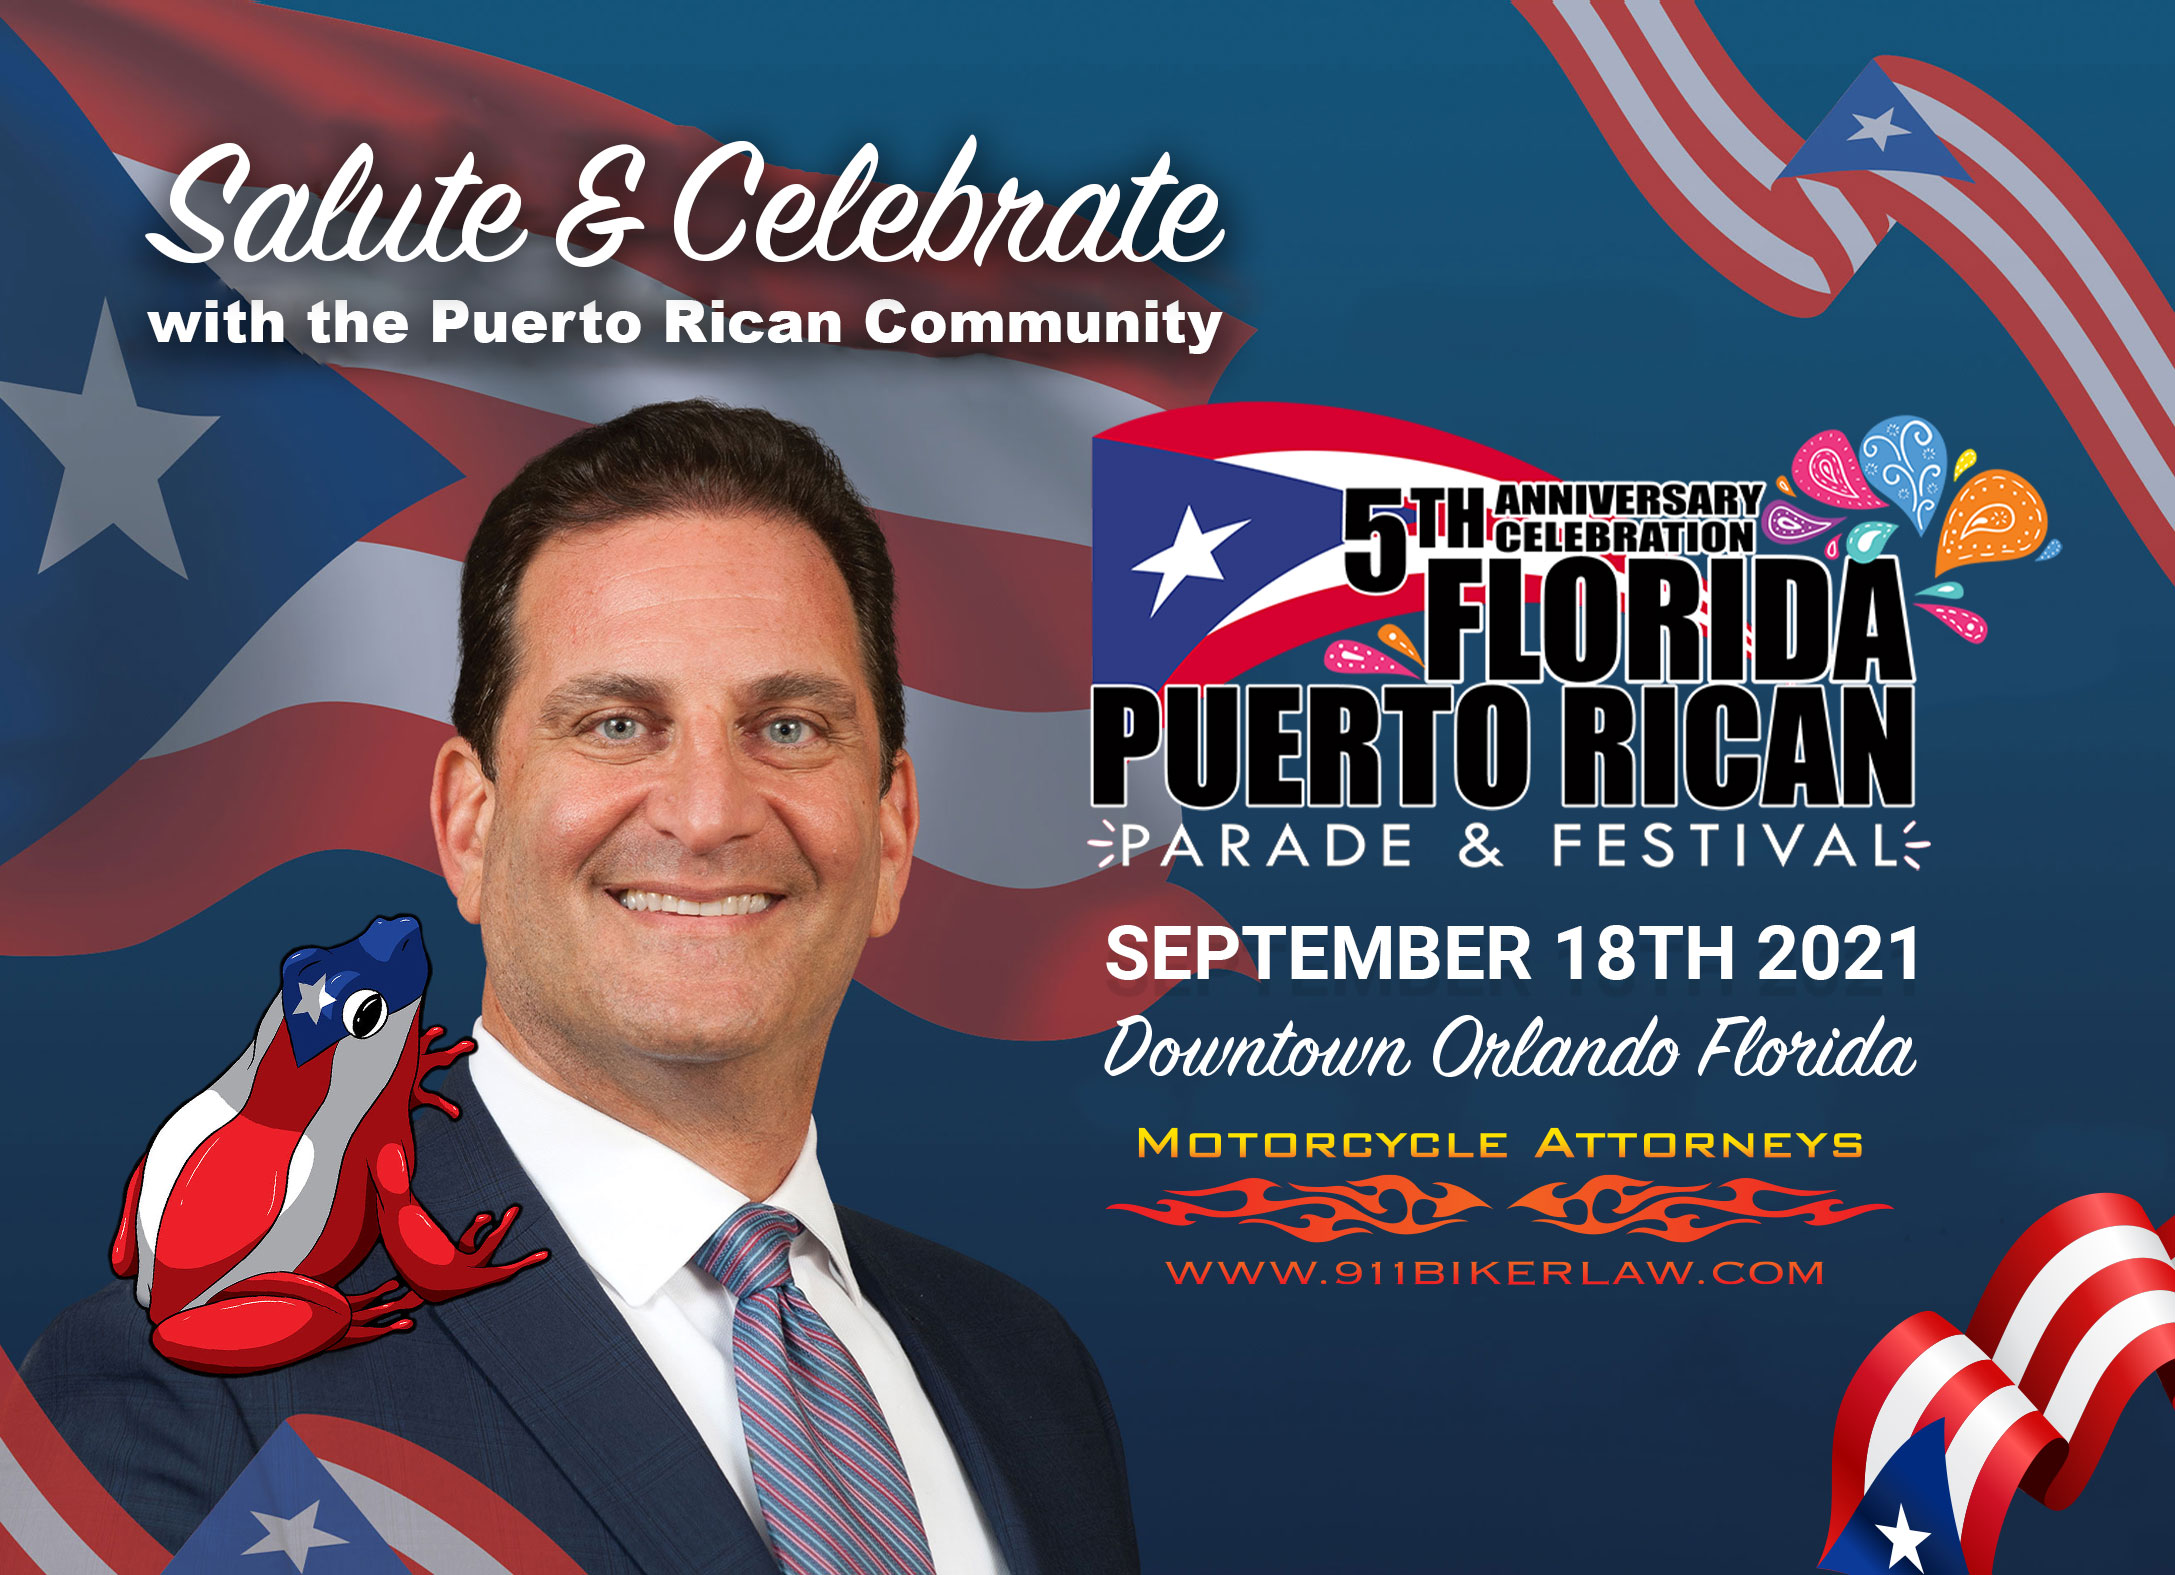 Picture for Enjoy Food & Artisan Goods At The Florida Puerto Rican Parade & Festival